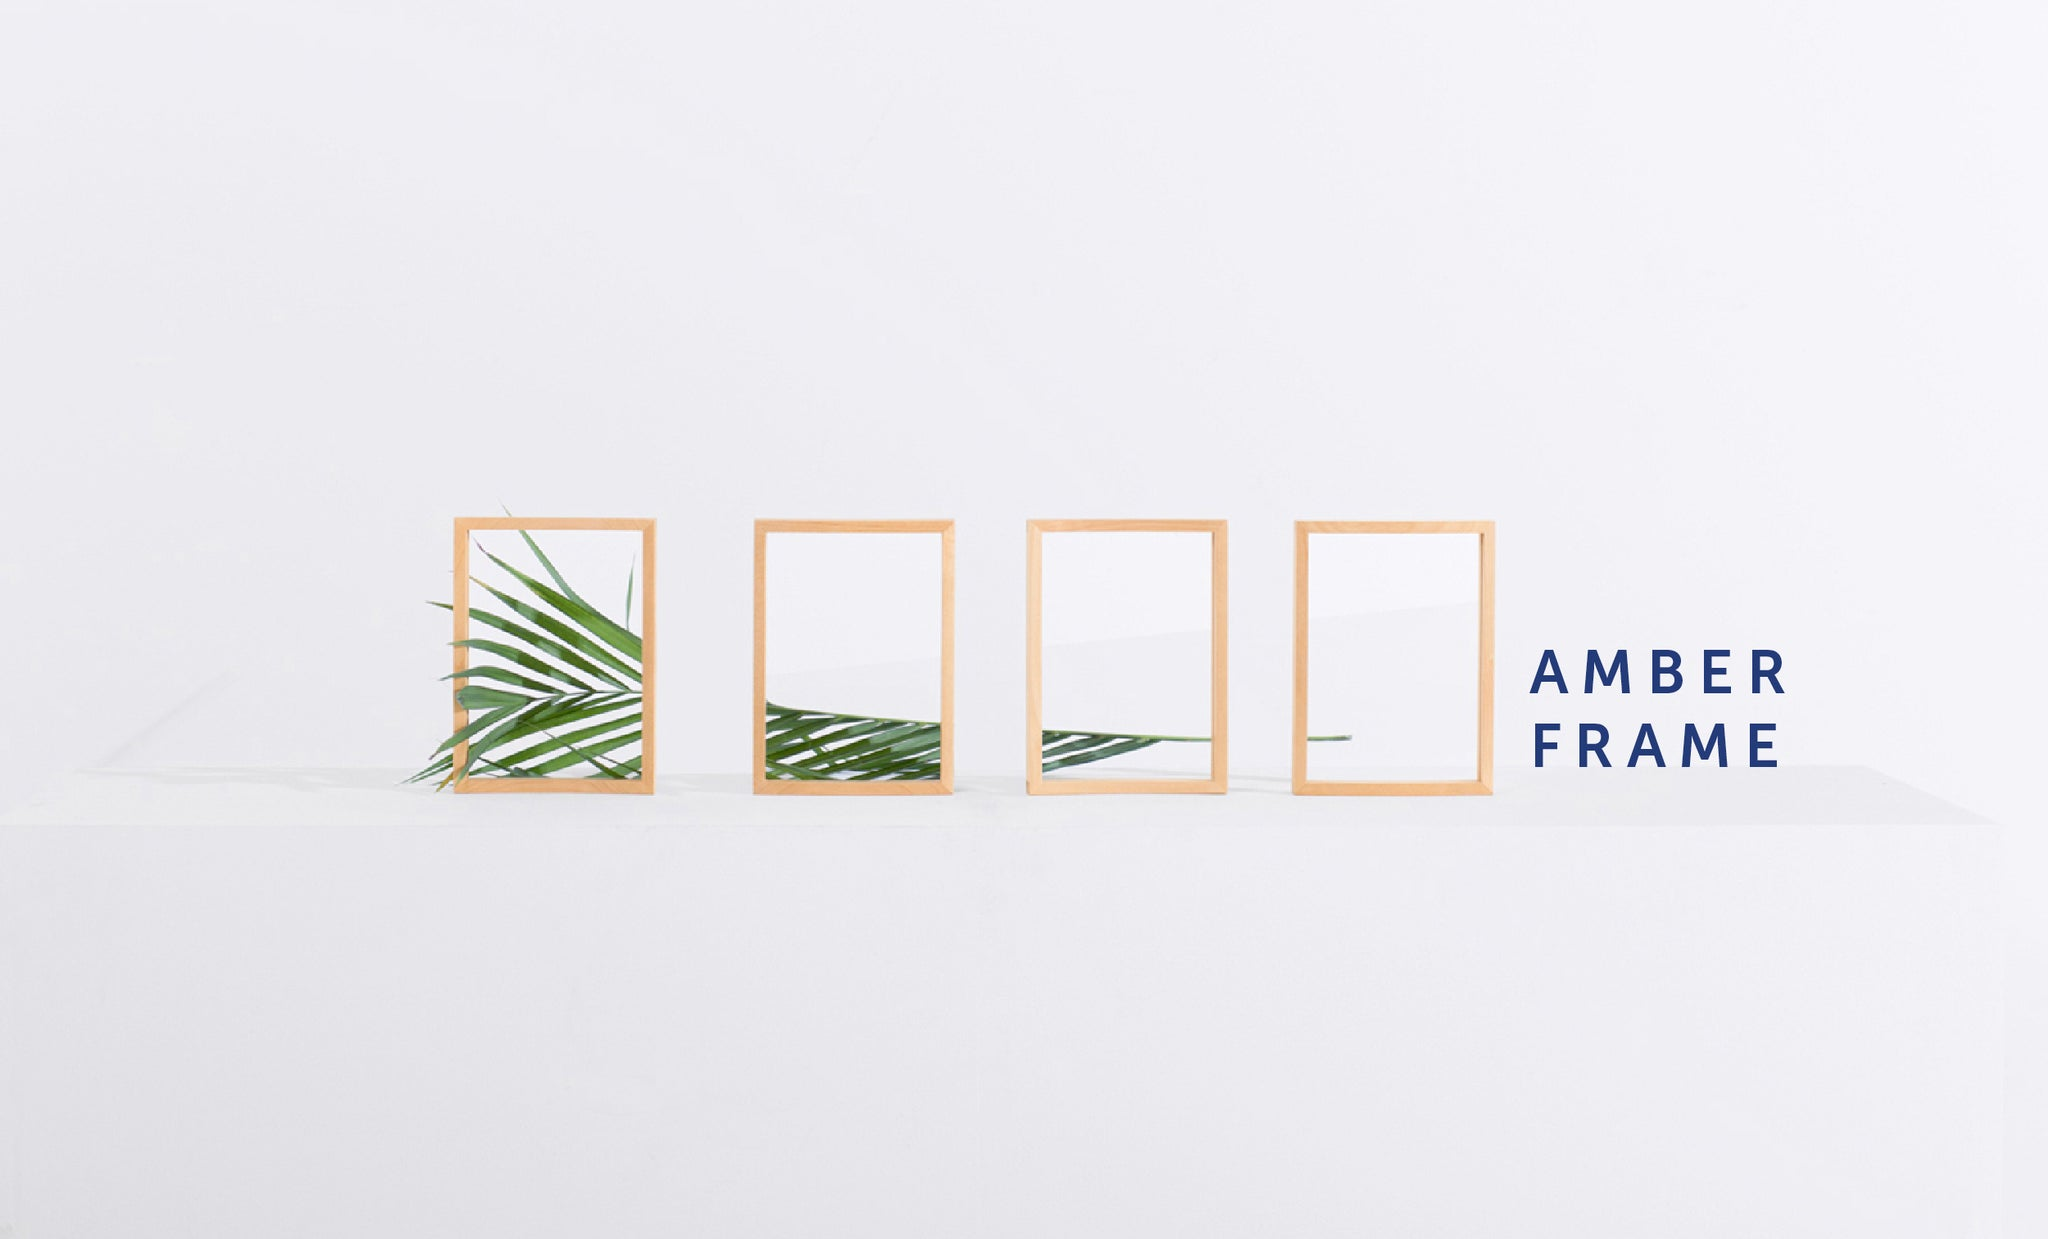 Amber Frame from Playful Angles Furniture Collection by Ziinlife